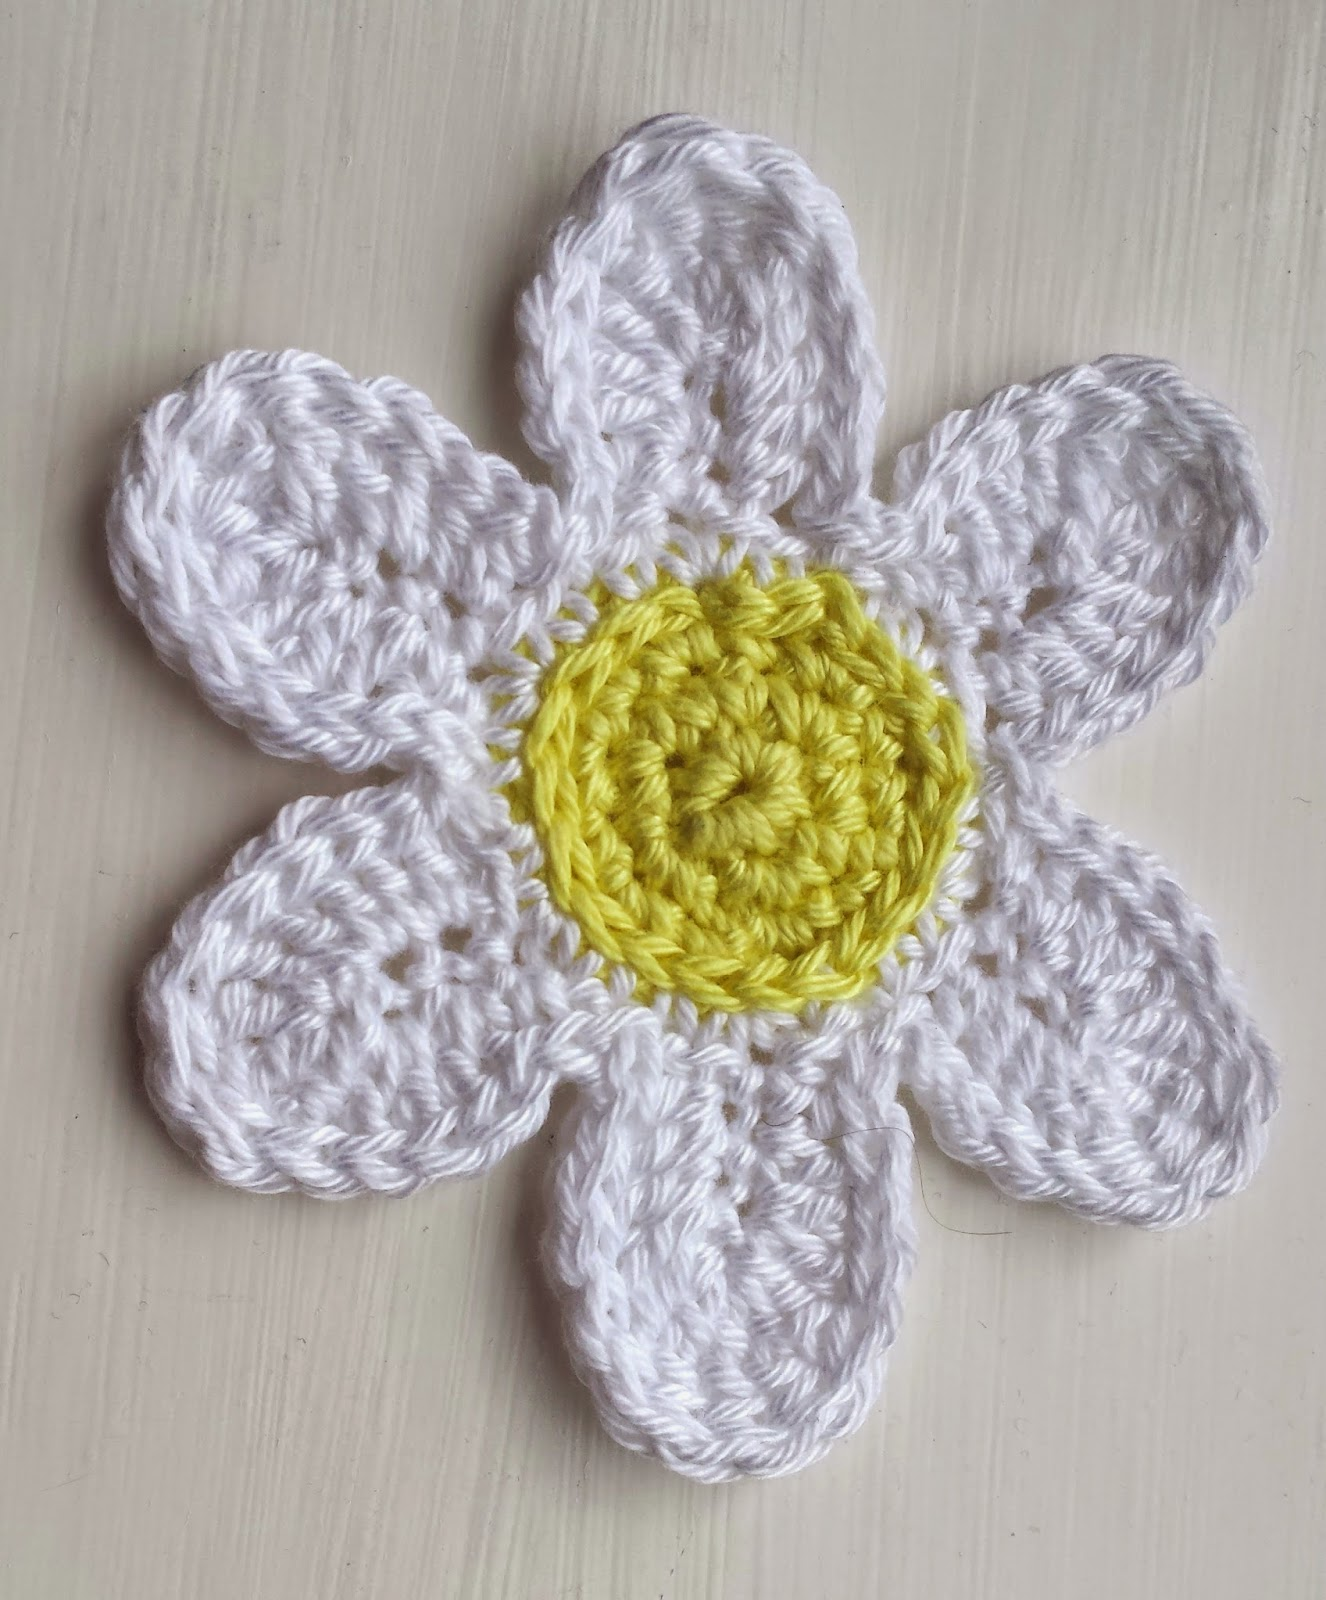 Craigloves2crochet How To Crochet A Trio Of Daisies